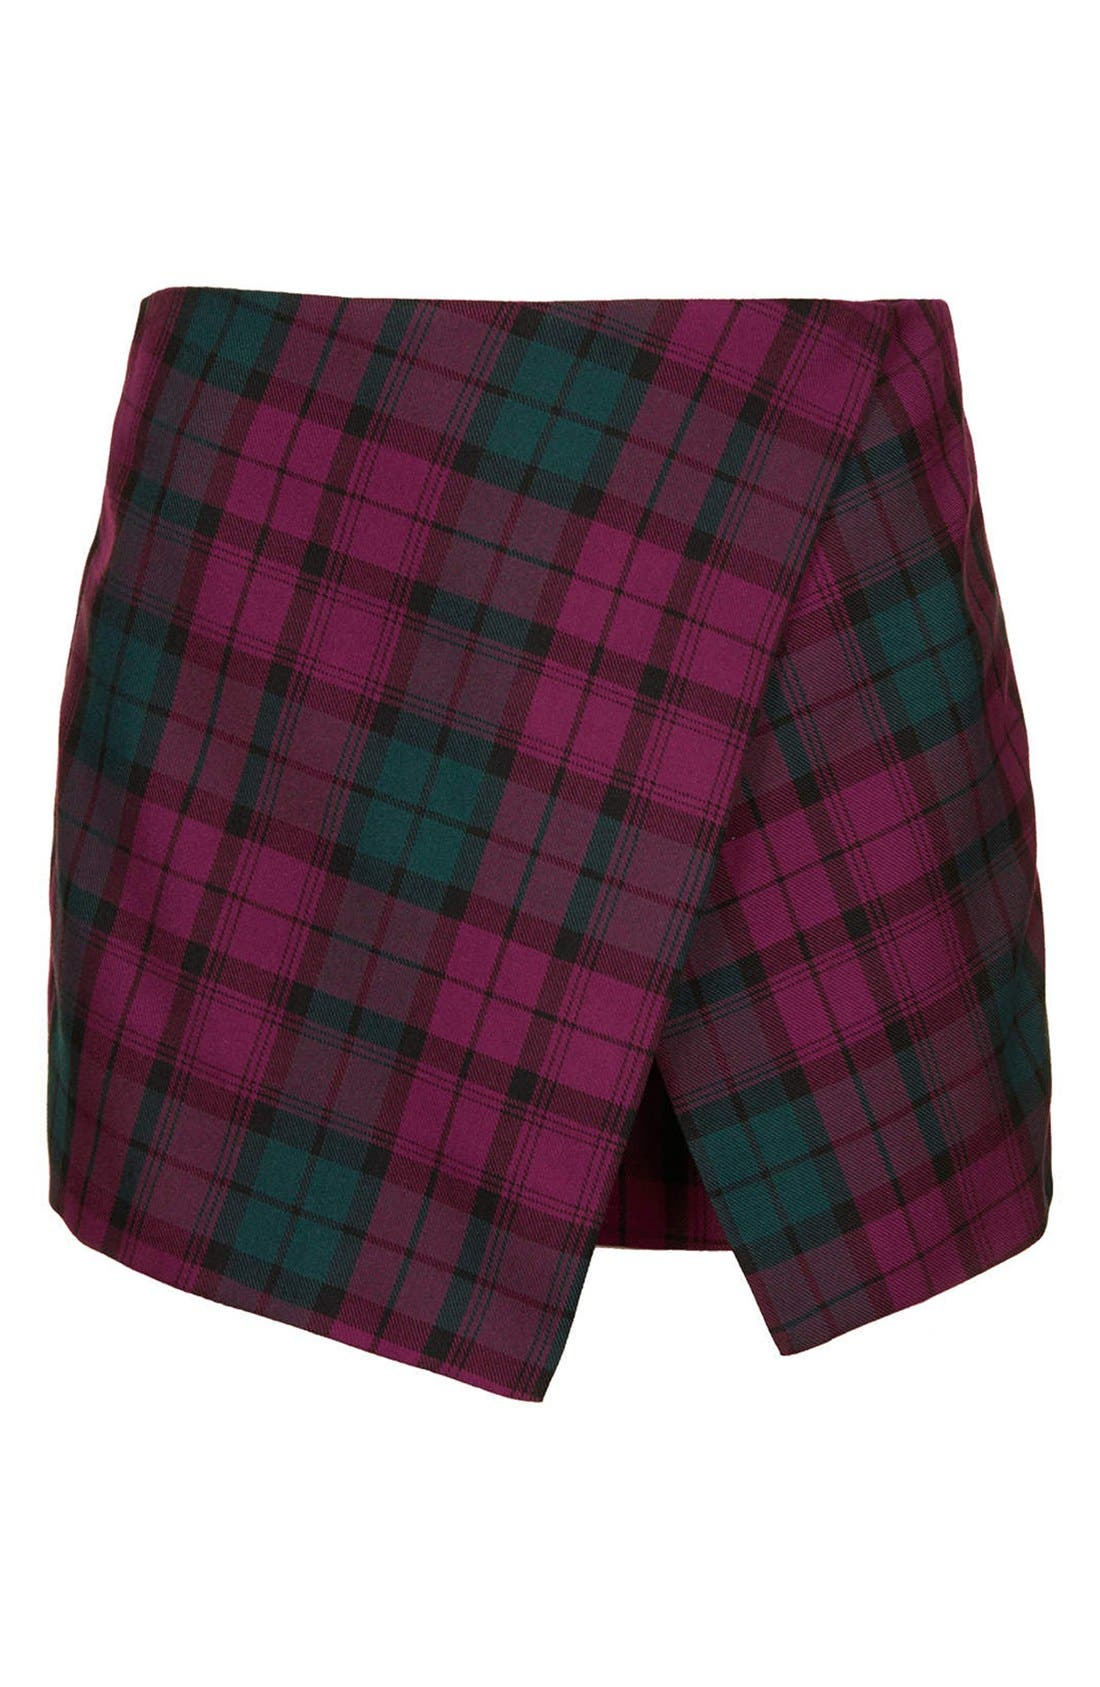 Alternate Image 3  - Topshop Tartan Plaid Skort (Petite)